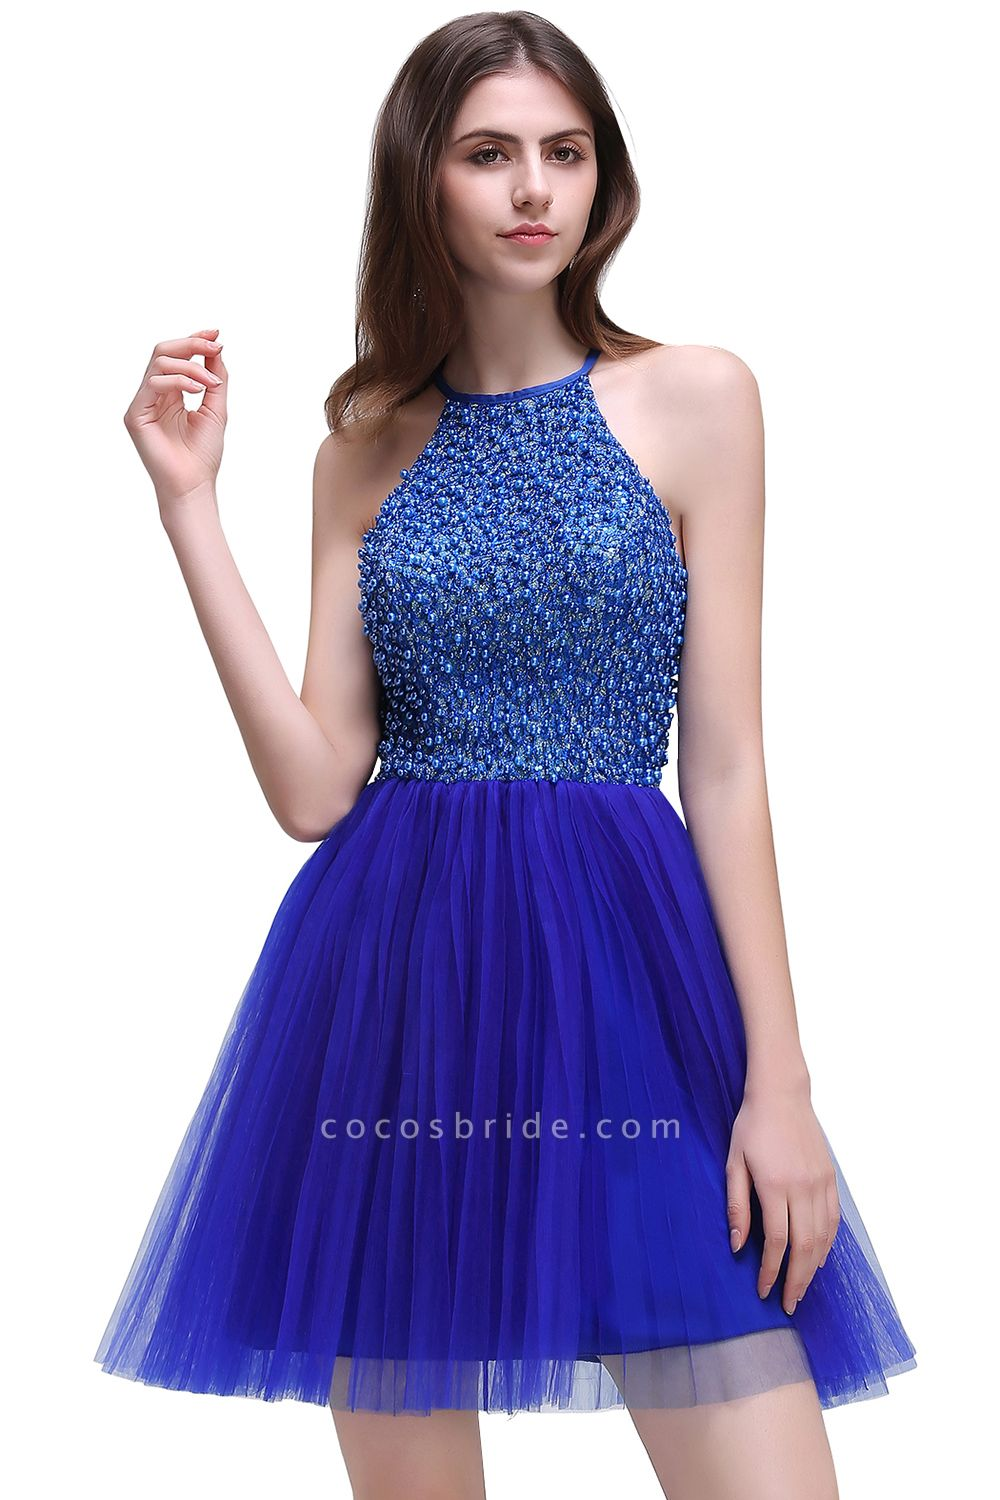 CAITLYN   A-line Halter Neck Short Tulle Royal Blue Homecoming Dresses with Beading